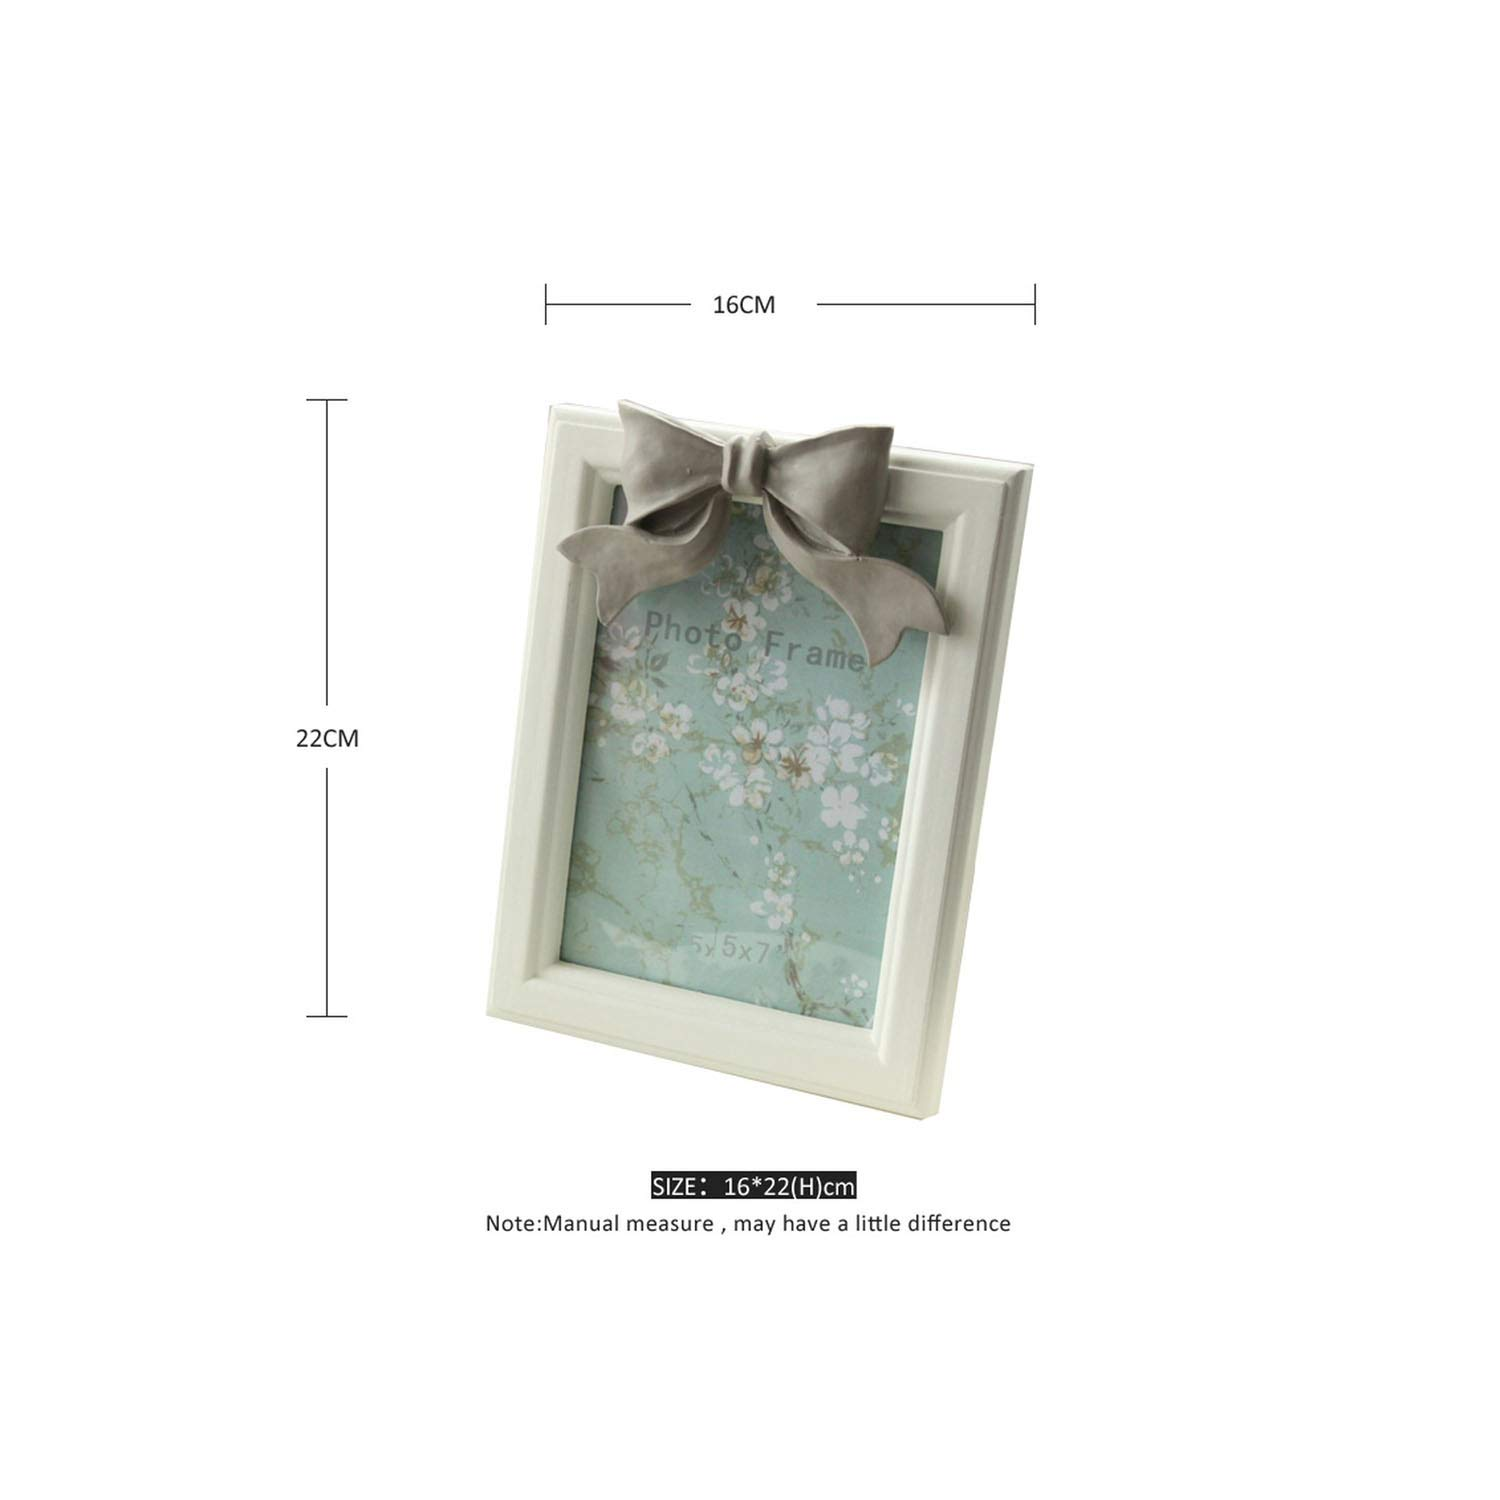 awret 1 Piece Resin Bow Knot Wall Hanging Vintage Wooden Frame for Family Home Decor GM08 7,White 7 Inch